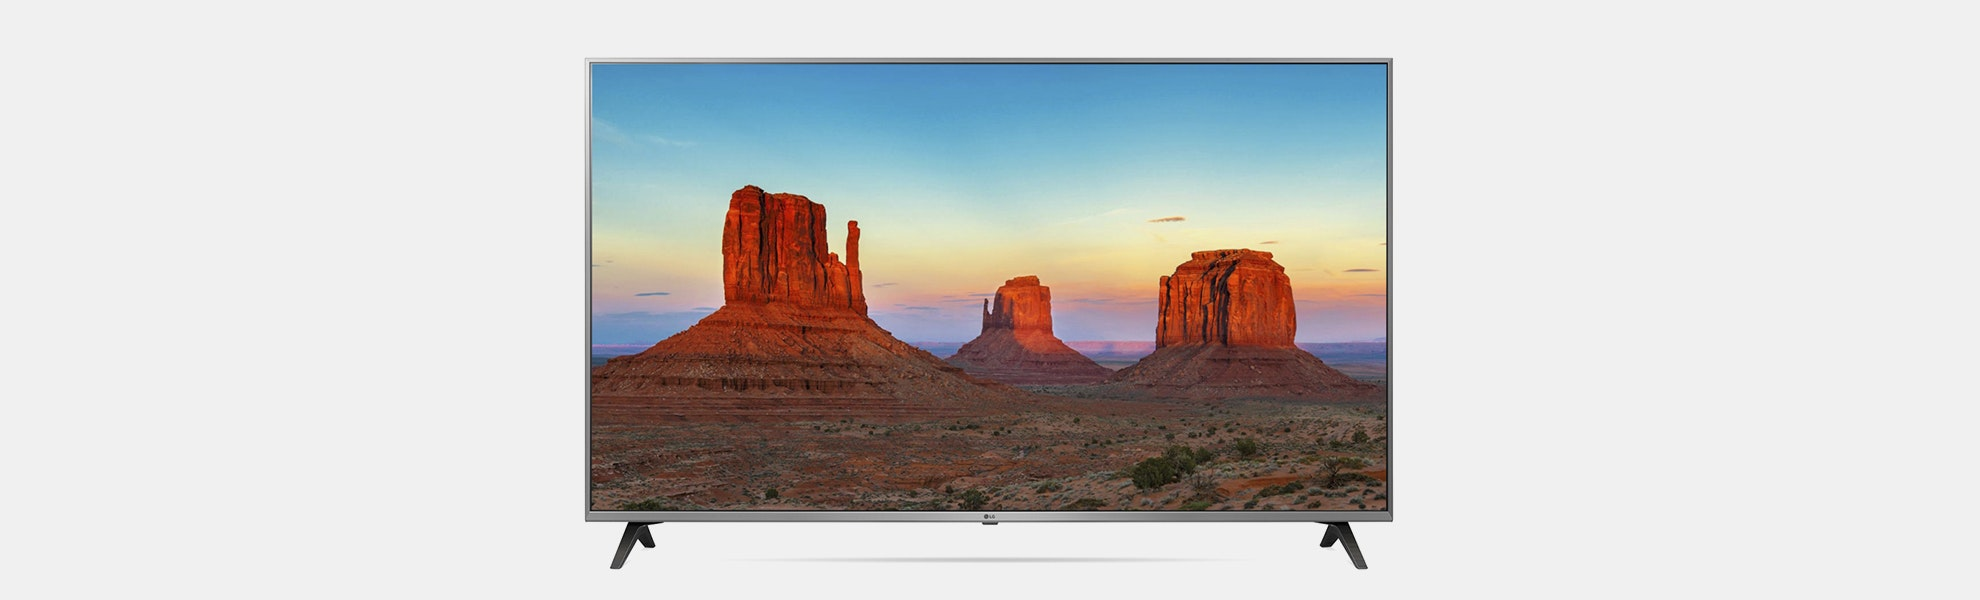 "LG ThinQ 55"" 4K HDR Smart LED UHD TV"